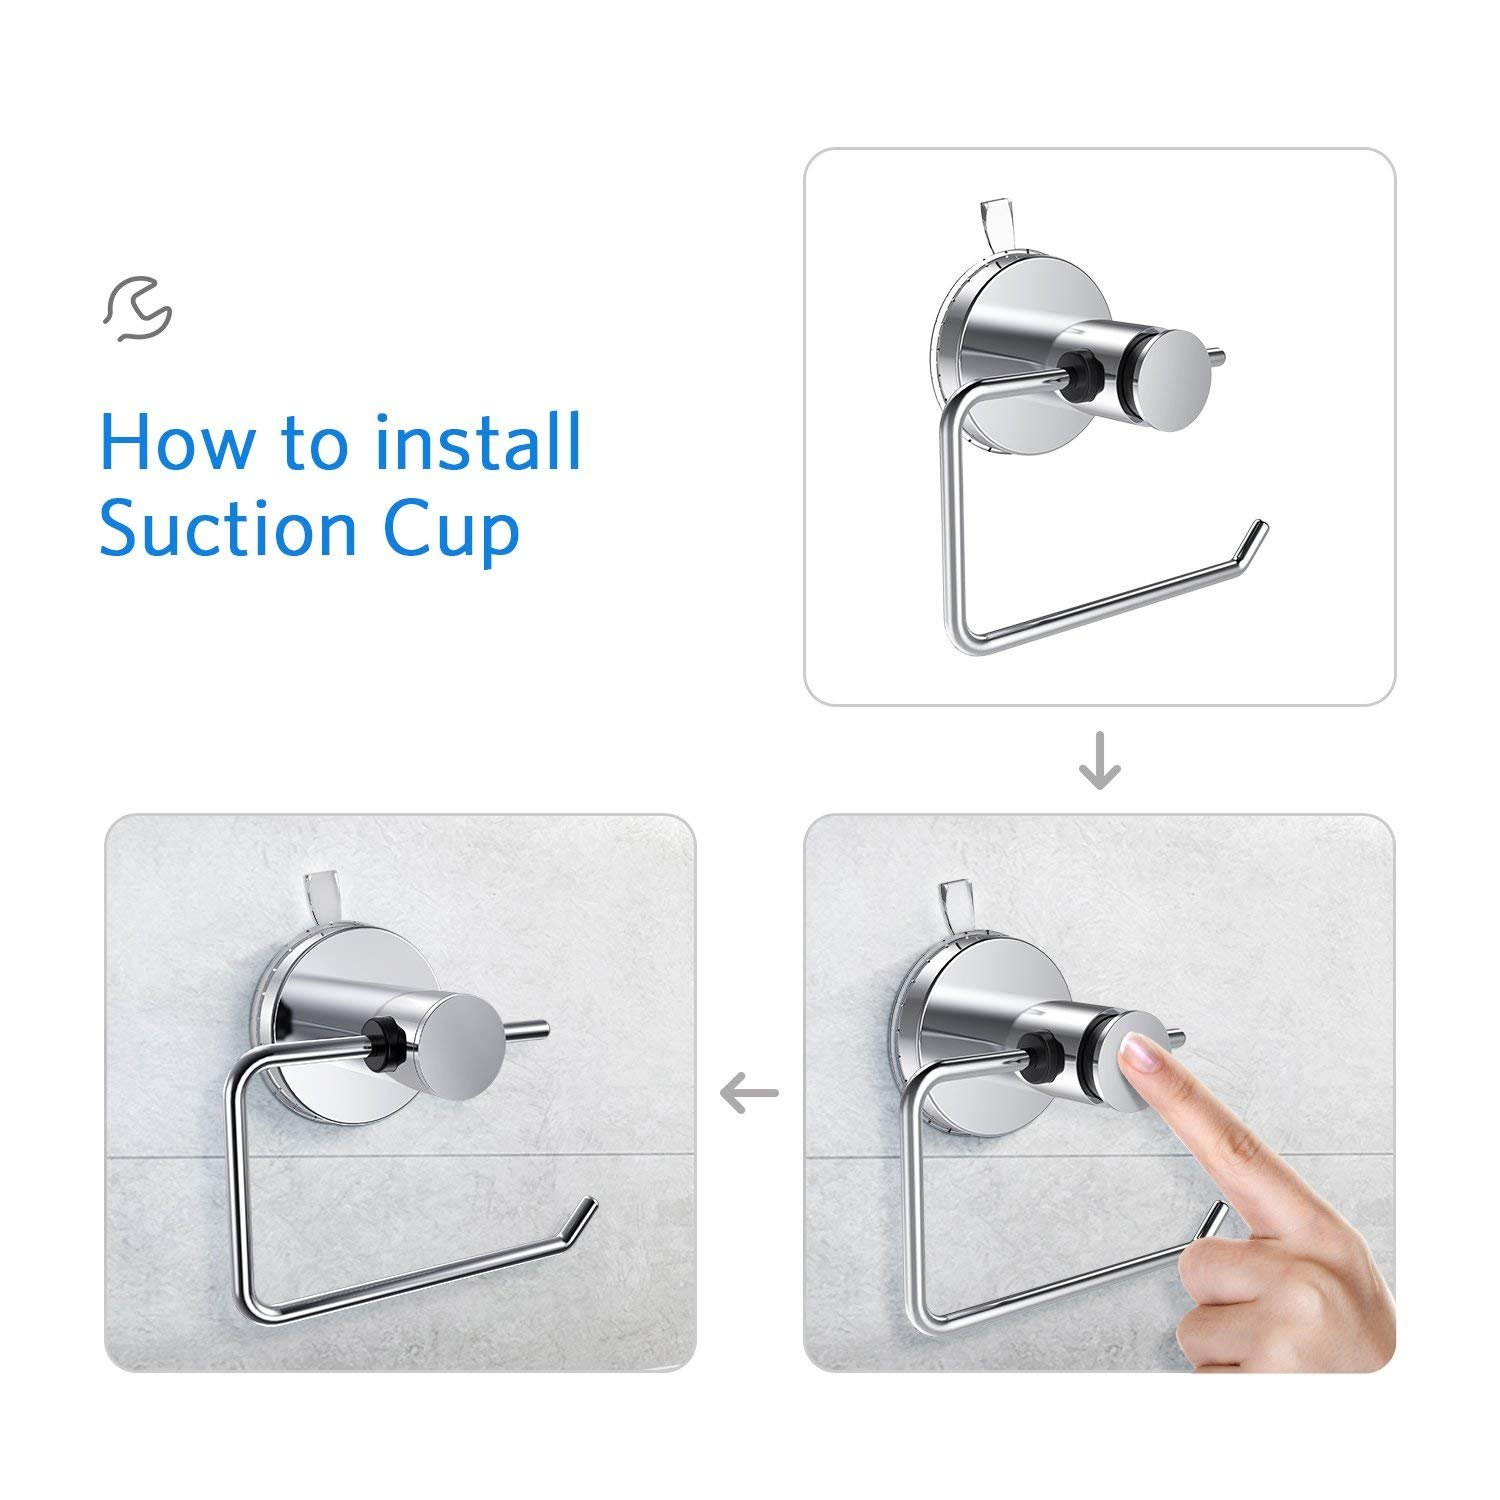 CQSTIME Toilet Roll Holder & Suction Cup Holder | Perfect Household Accessory | Ideal for Toilets & Bathrooms | Stainless Steel Chrome Finish | Easy to Install & Remove | Works on all Flat Surfaces by CQSTIME (Image #4)